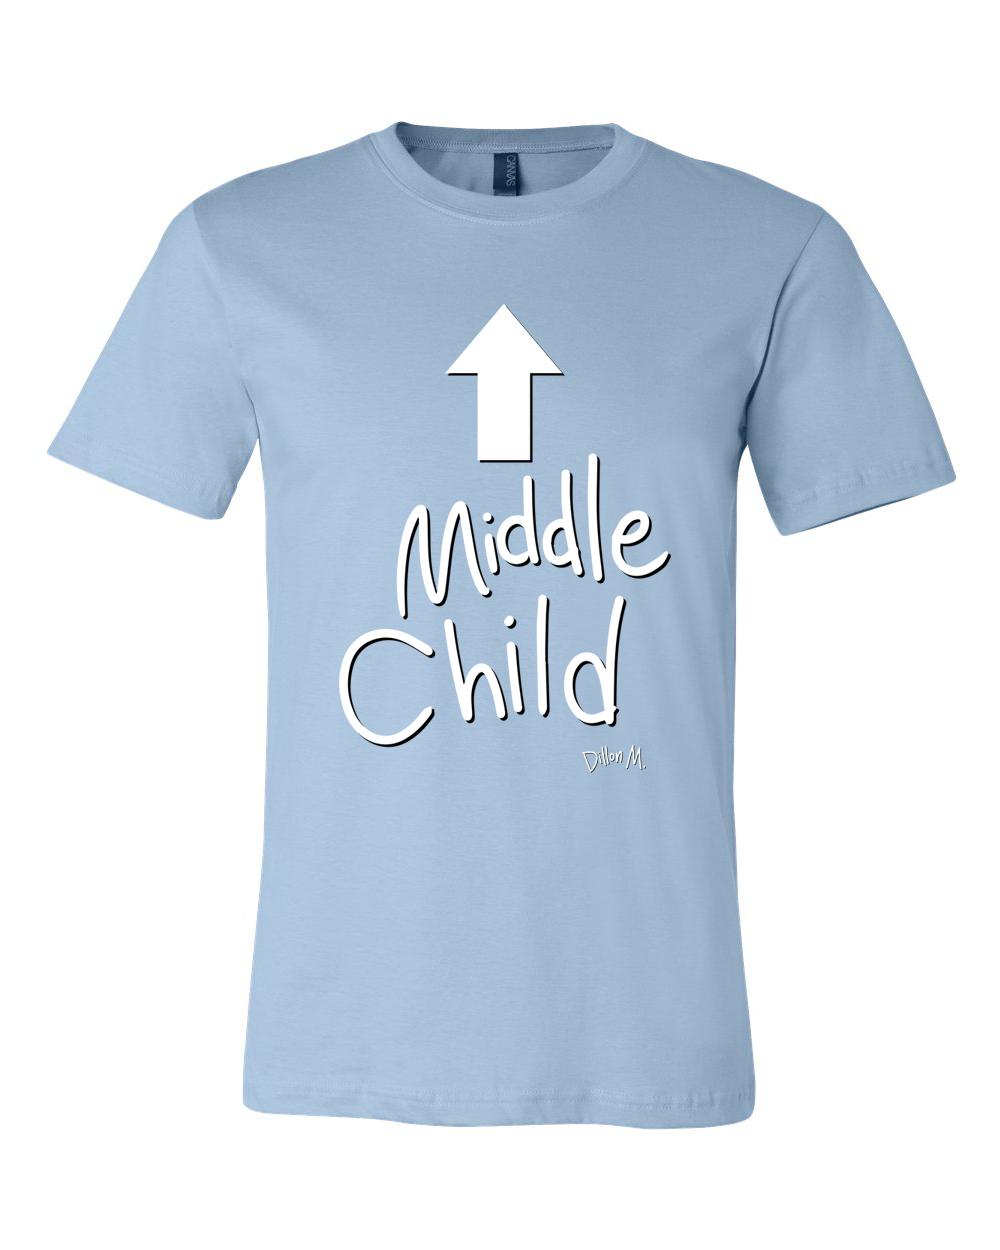 Dillon M. : Middle Child Tee